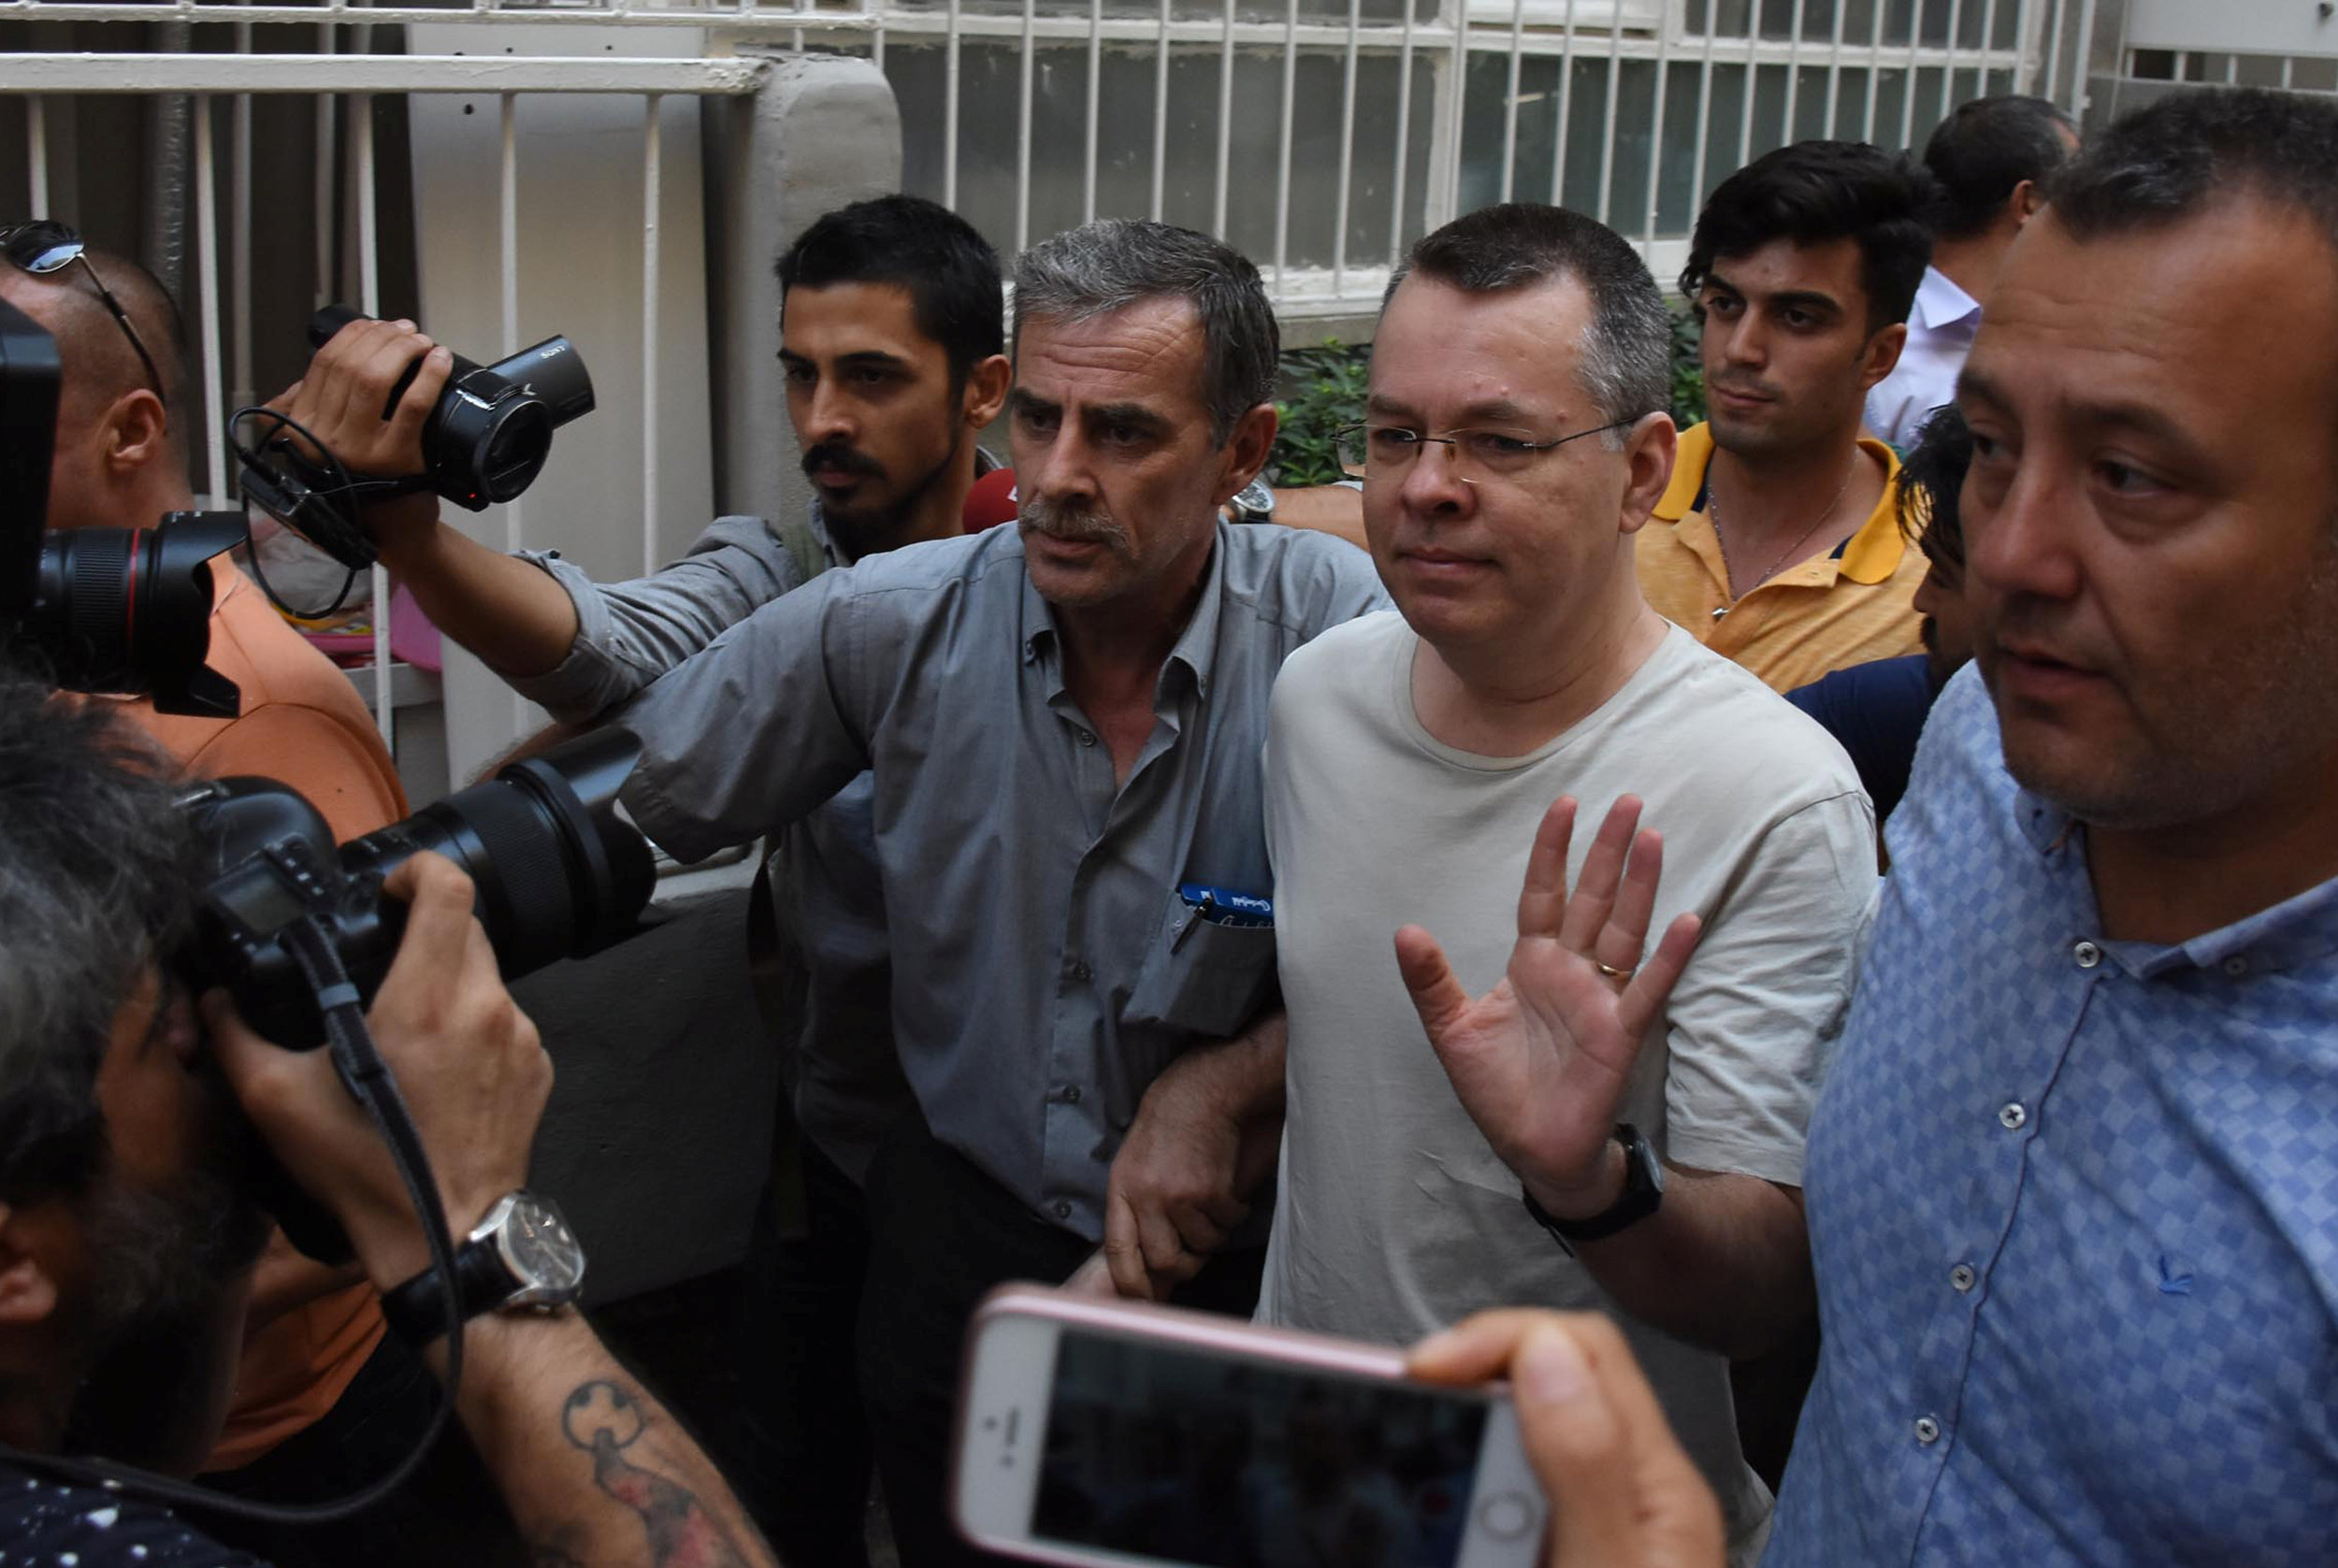 FILE PHOTO: U.S. pastor Andrew Brunson reacts as he arrives at his home after being released from the prison in Izmir, Turkey July 25, 2018. Demiroren News Agency, DHA via REUTERS